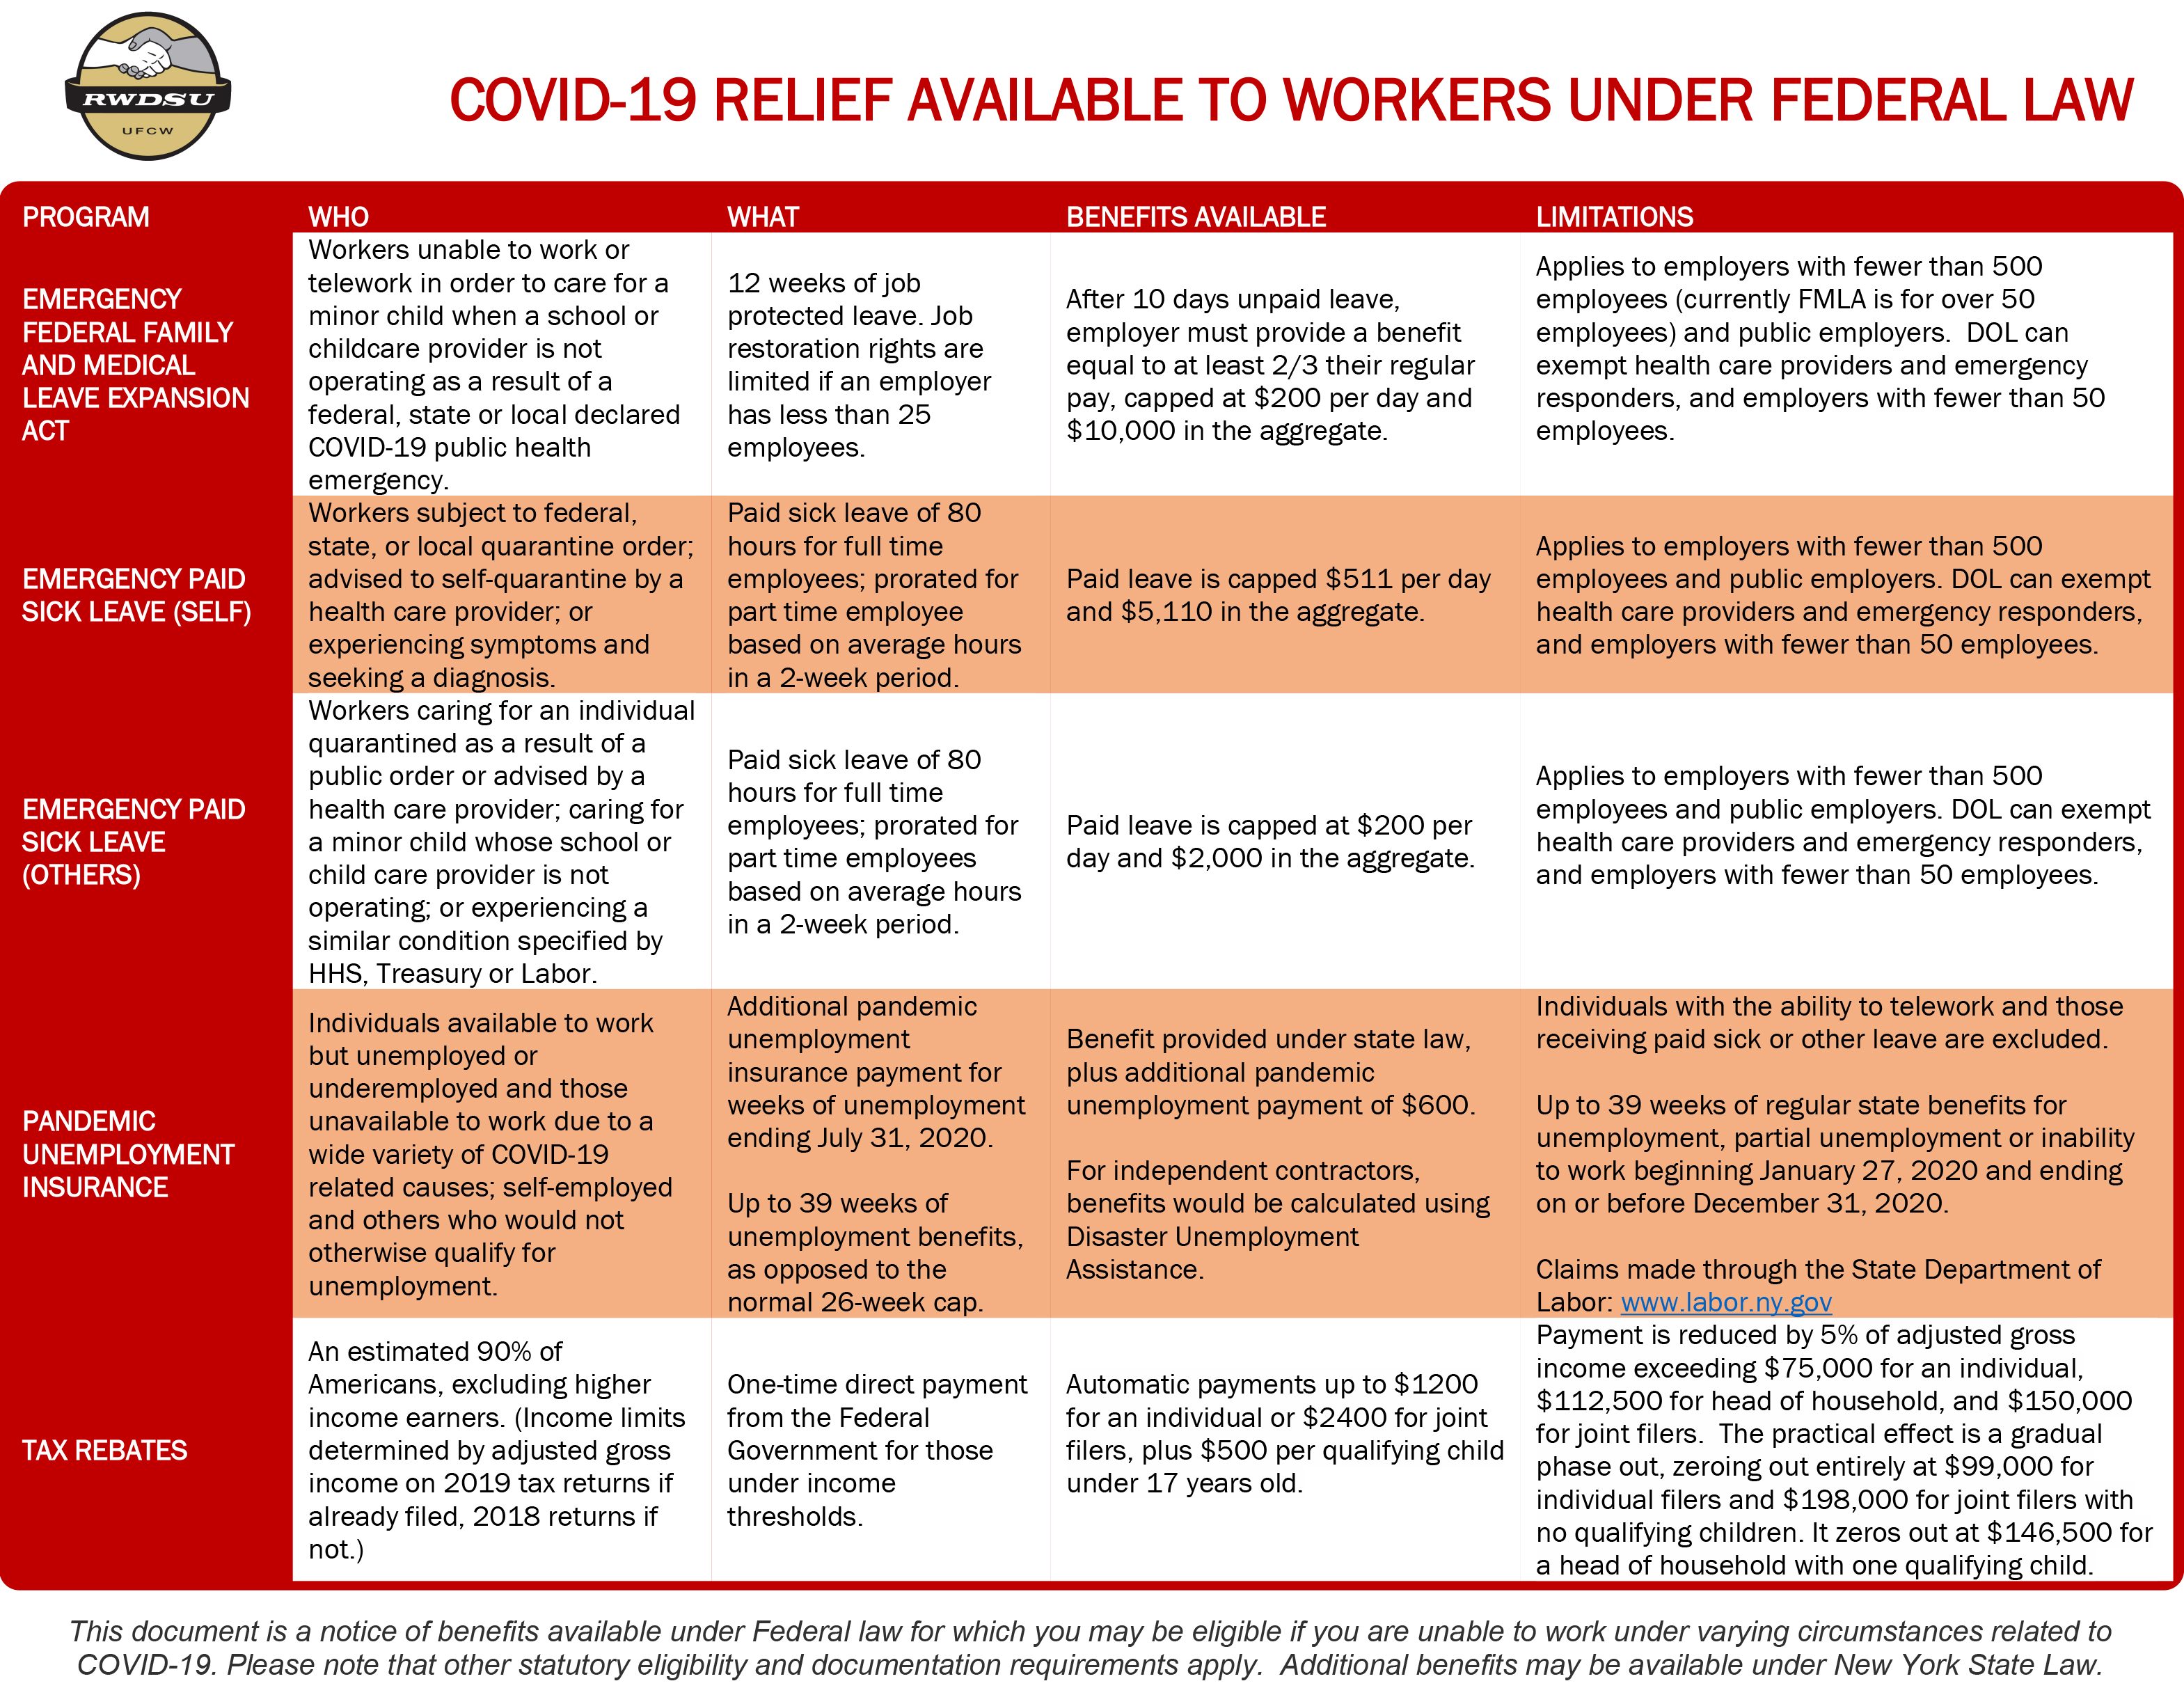 COVID_Federal_Benefit_Grid_032920_Formatted_UPDATED.jpg